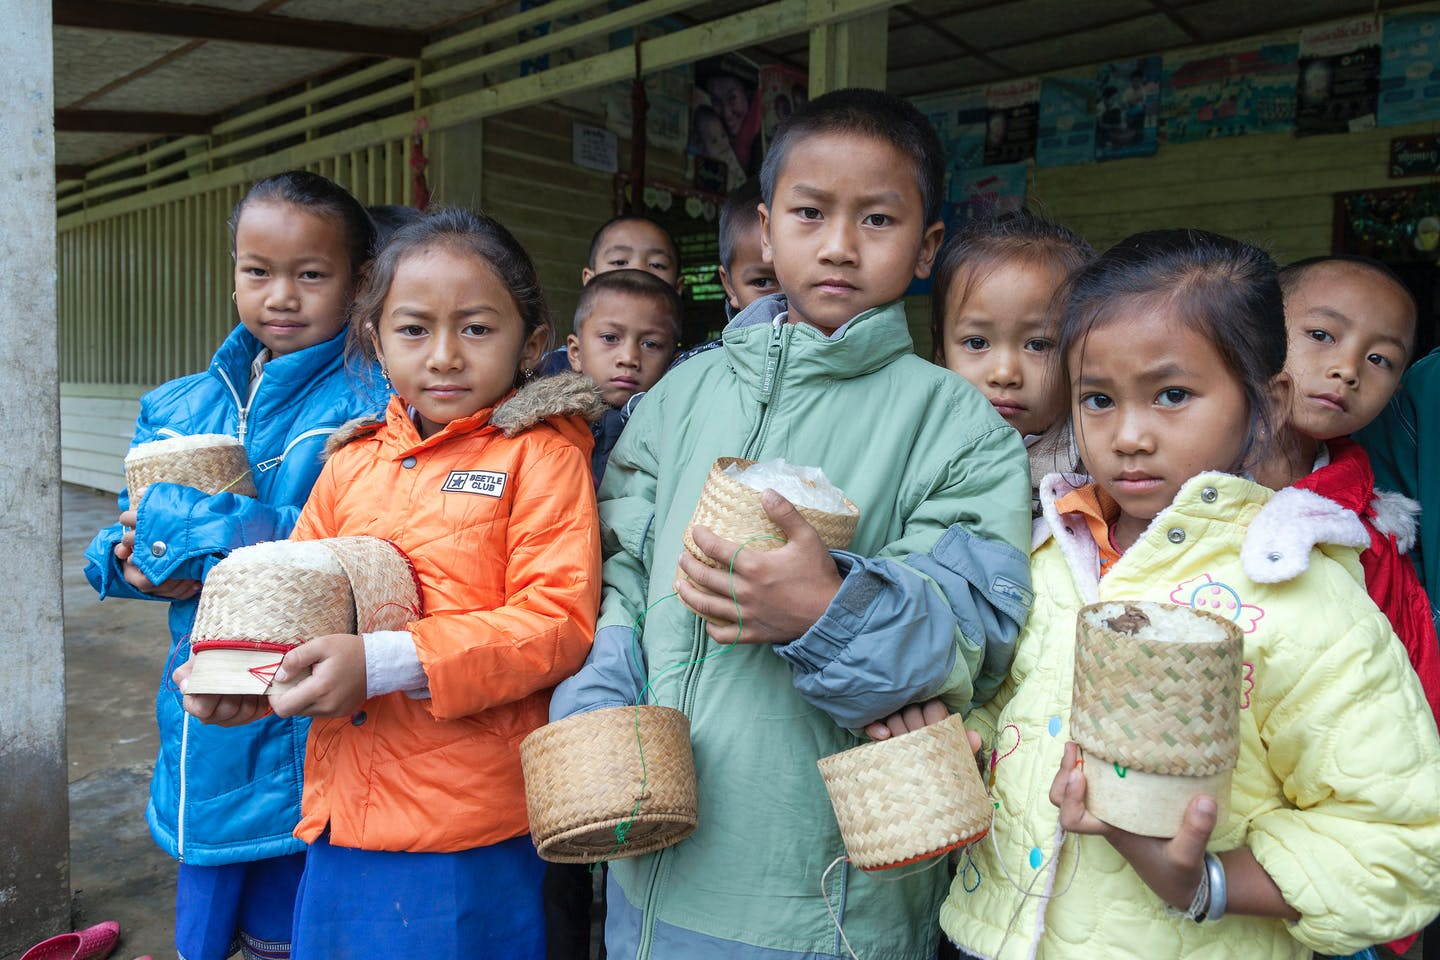 Children in Laos get free school lunches in government and World Bank programme